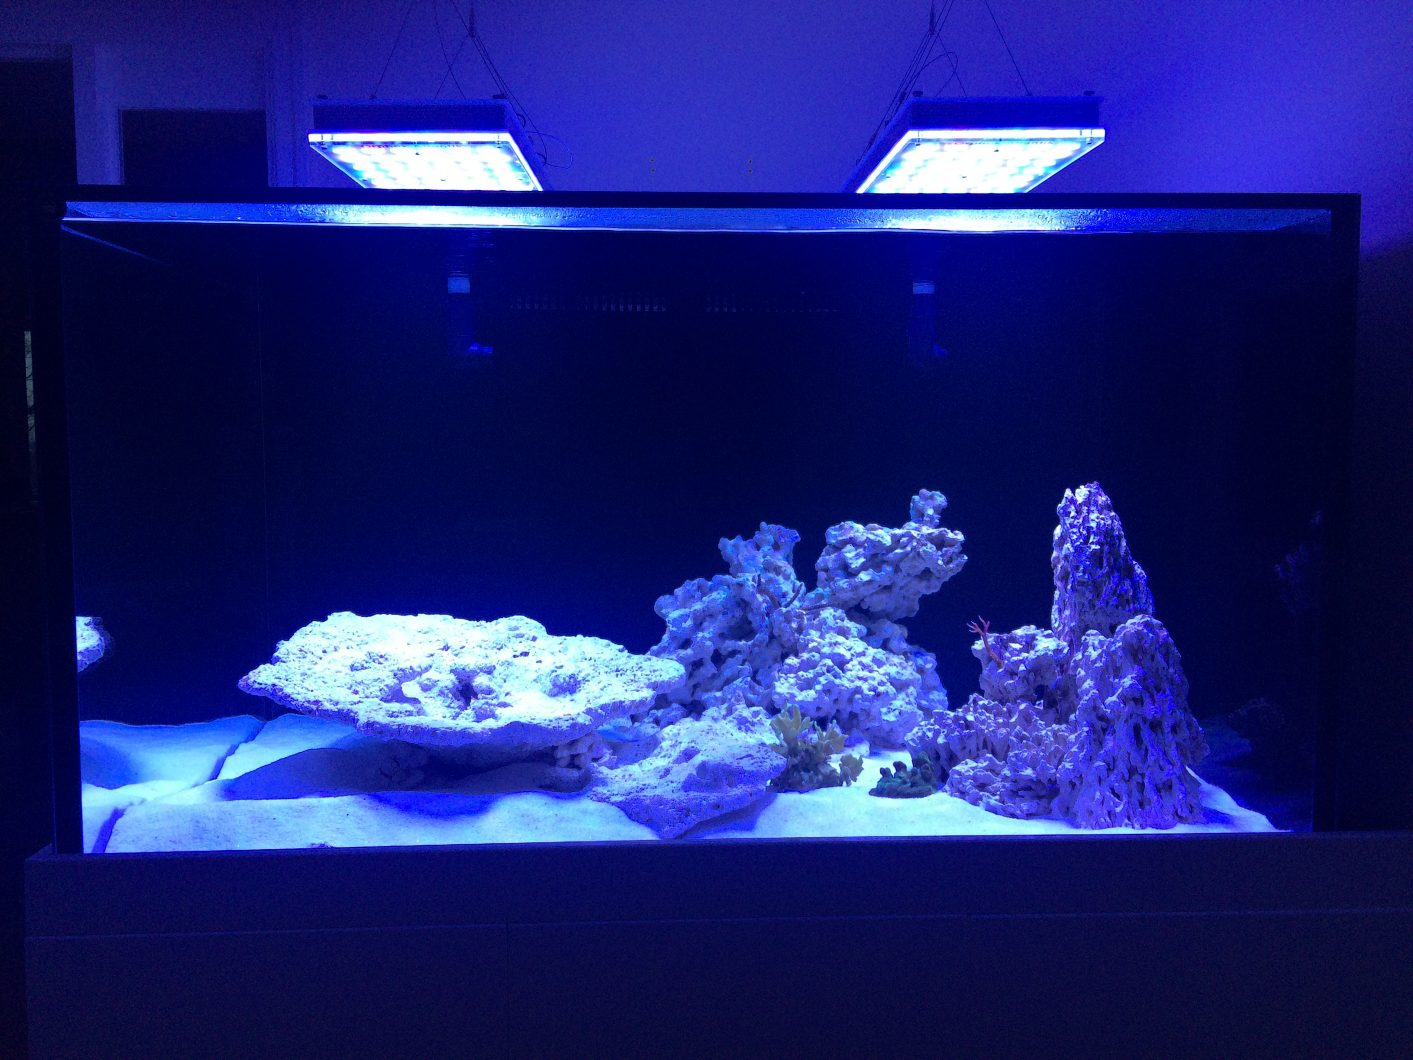 beste aquariumrif-LED's